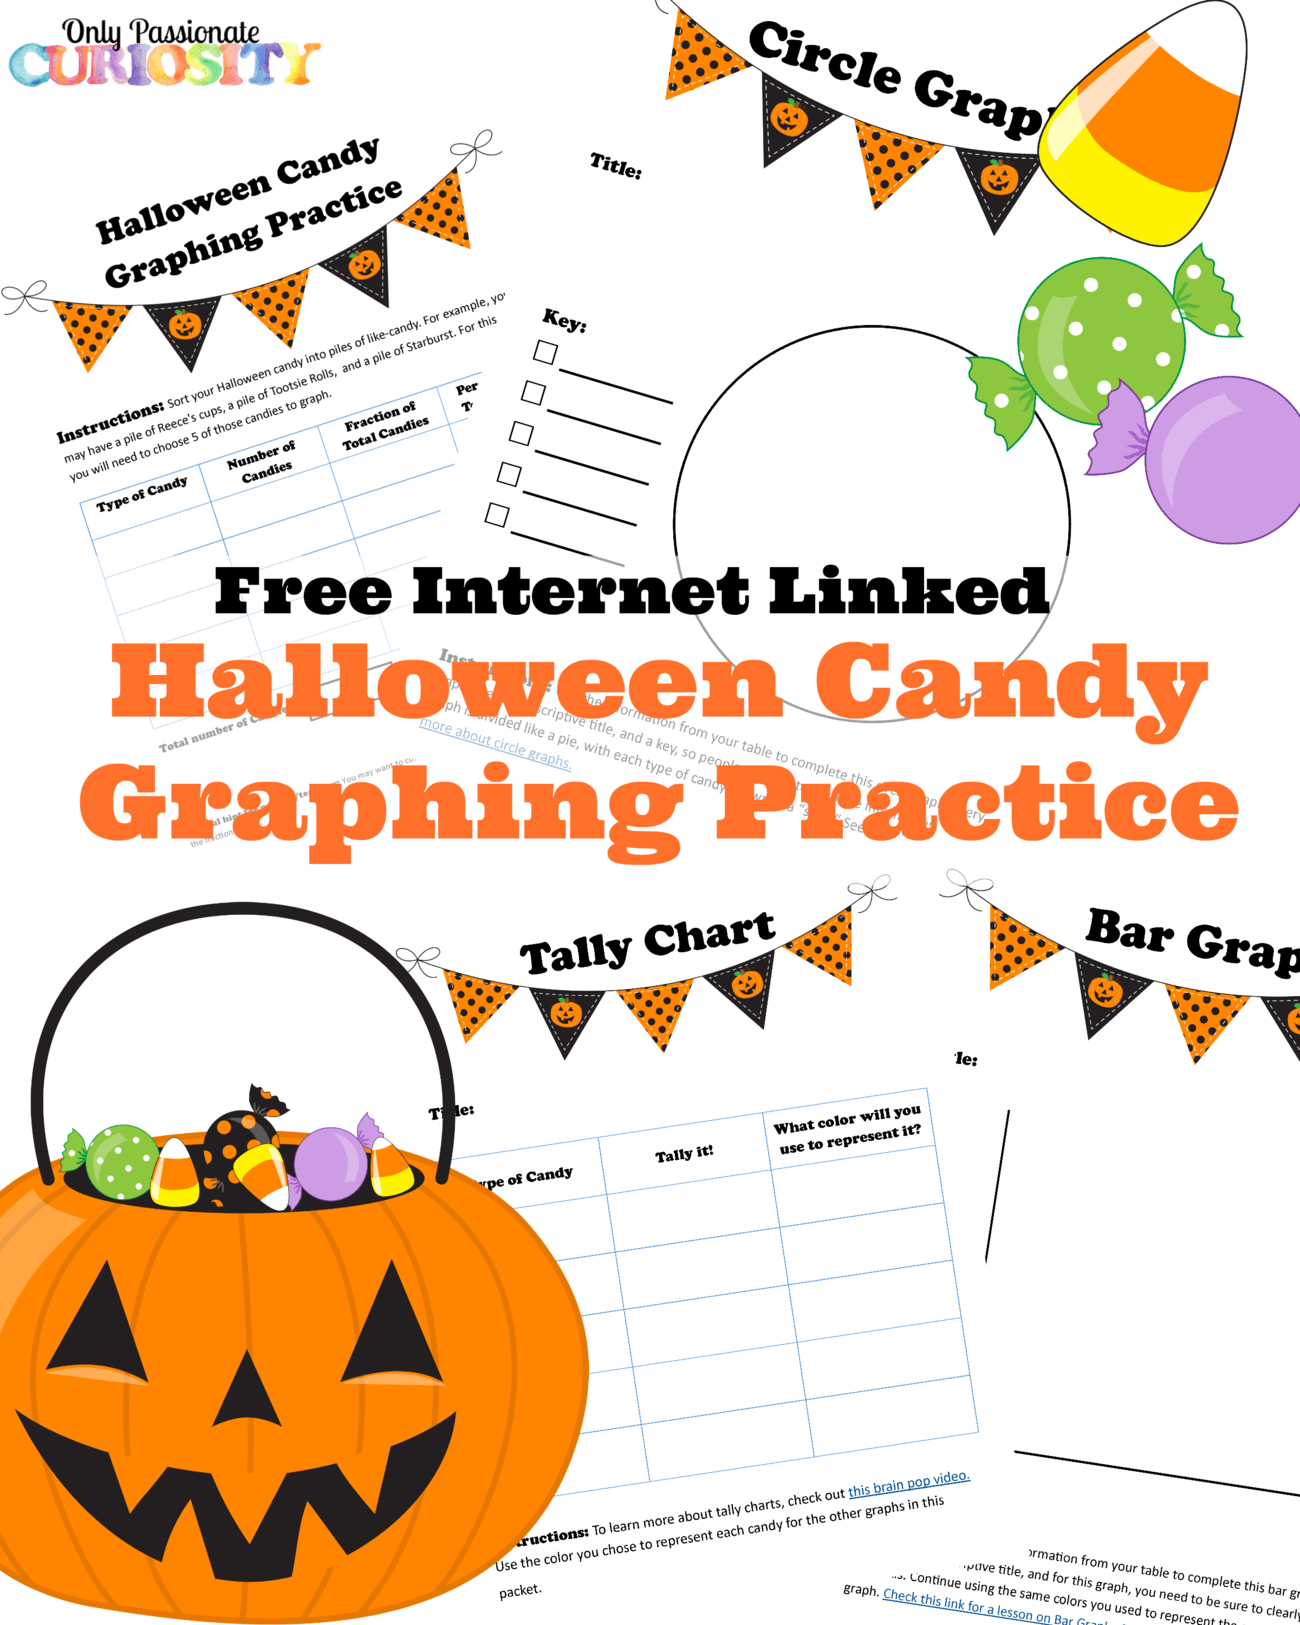 worksheet Halloween Graphing halloween candy graphing practice free printable only passionate curiosity